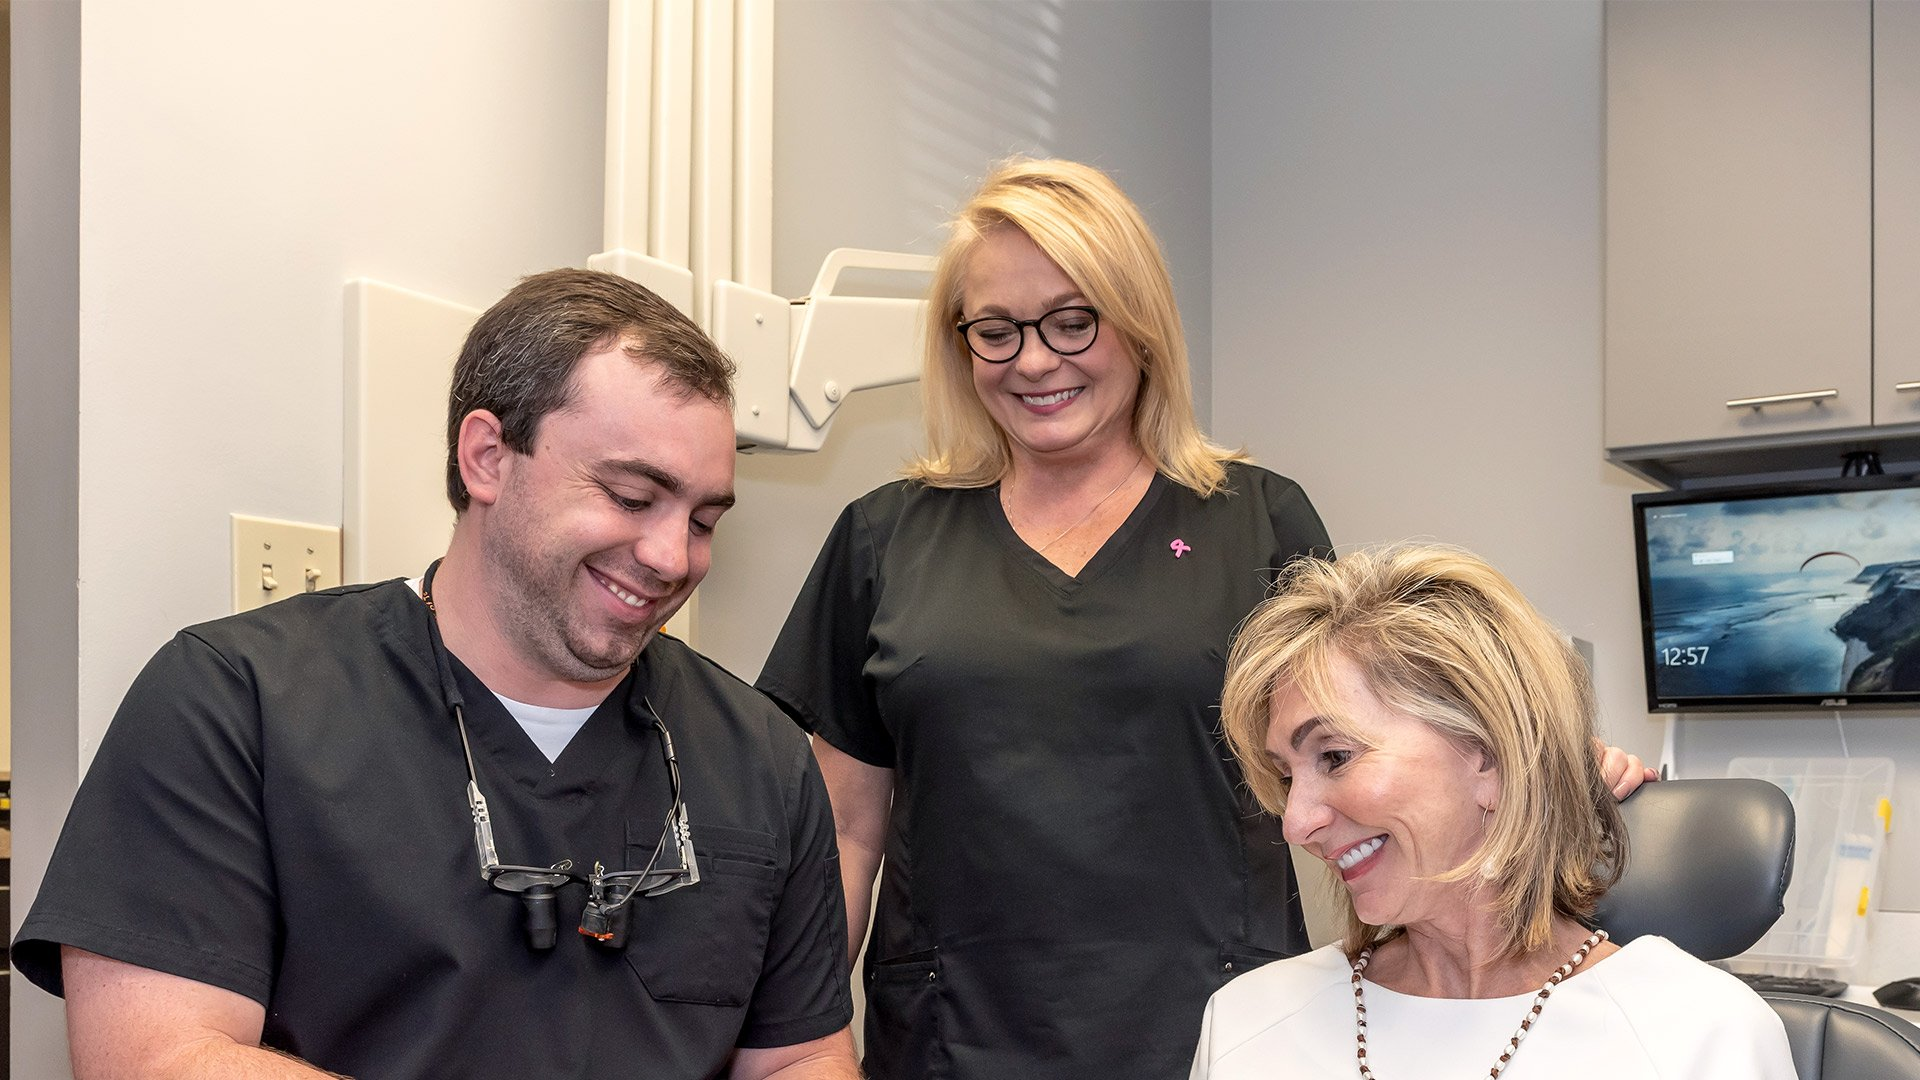 Dr. Hill and staff member smiling with senior patient